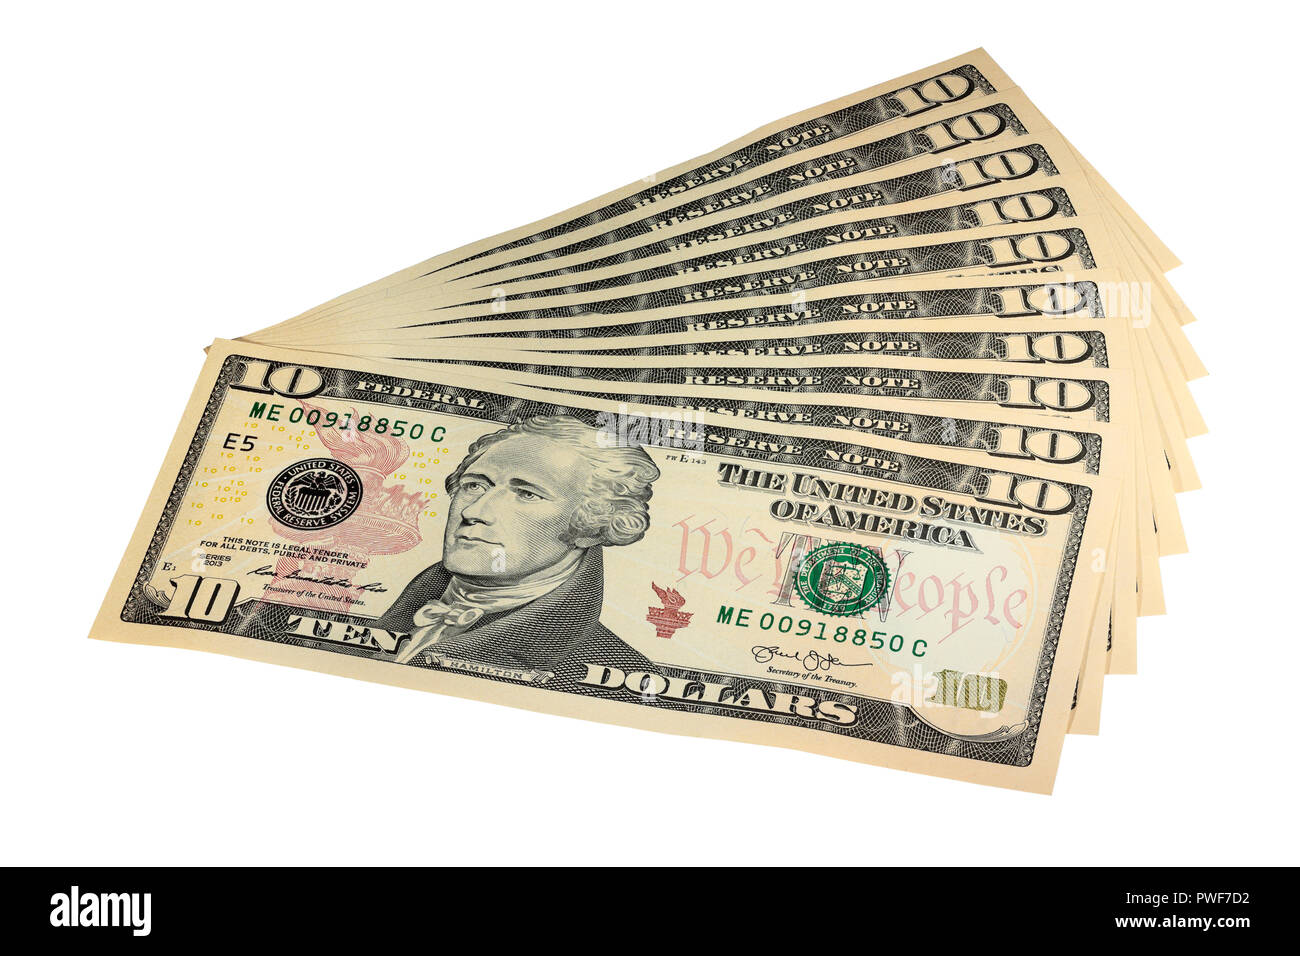 A Fan of $10 Bills isolated on a white background - Stock Image